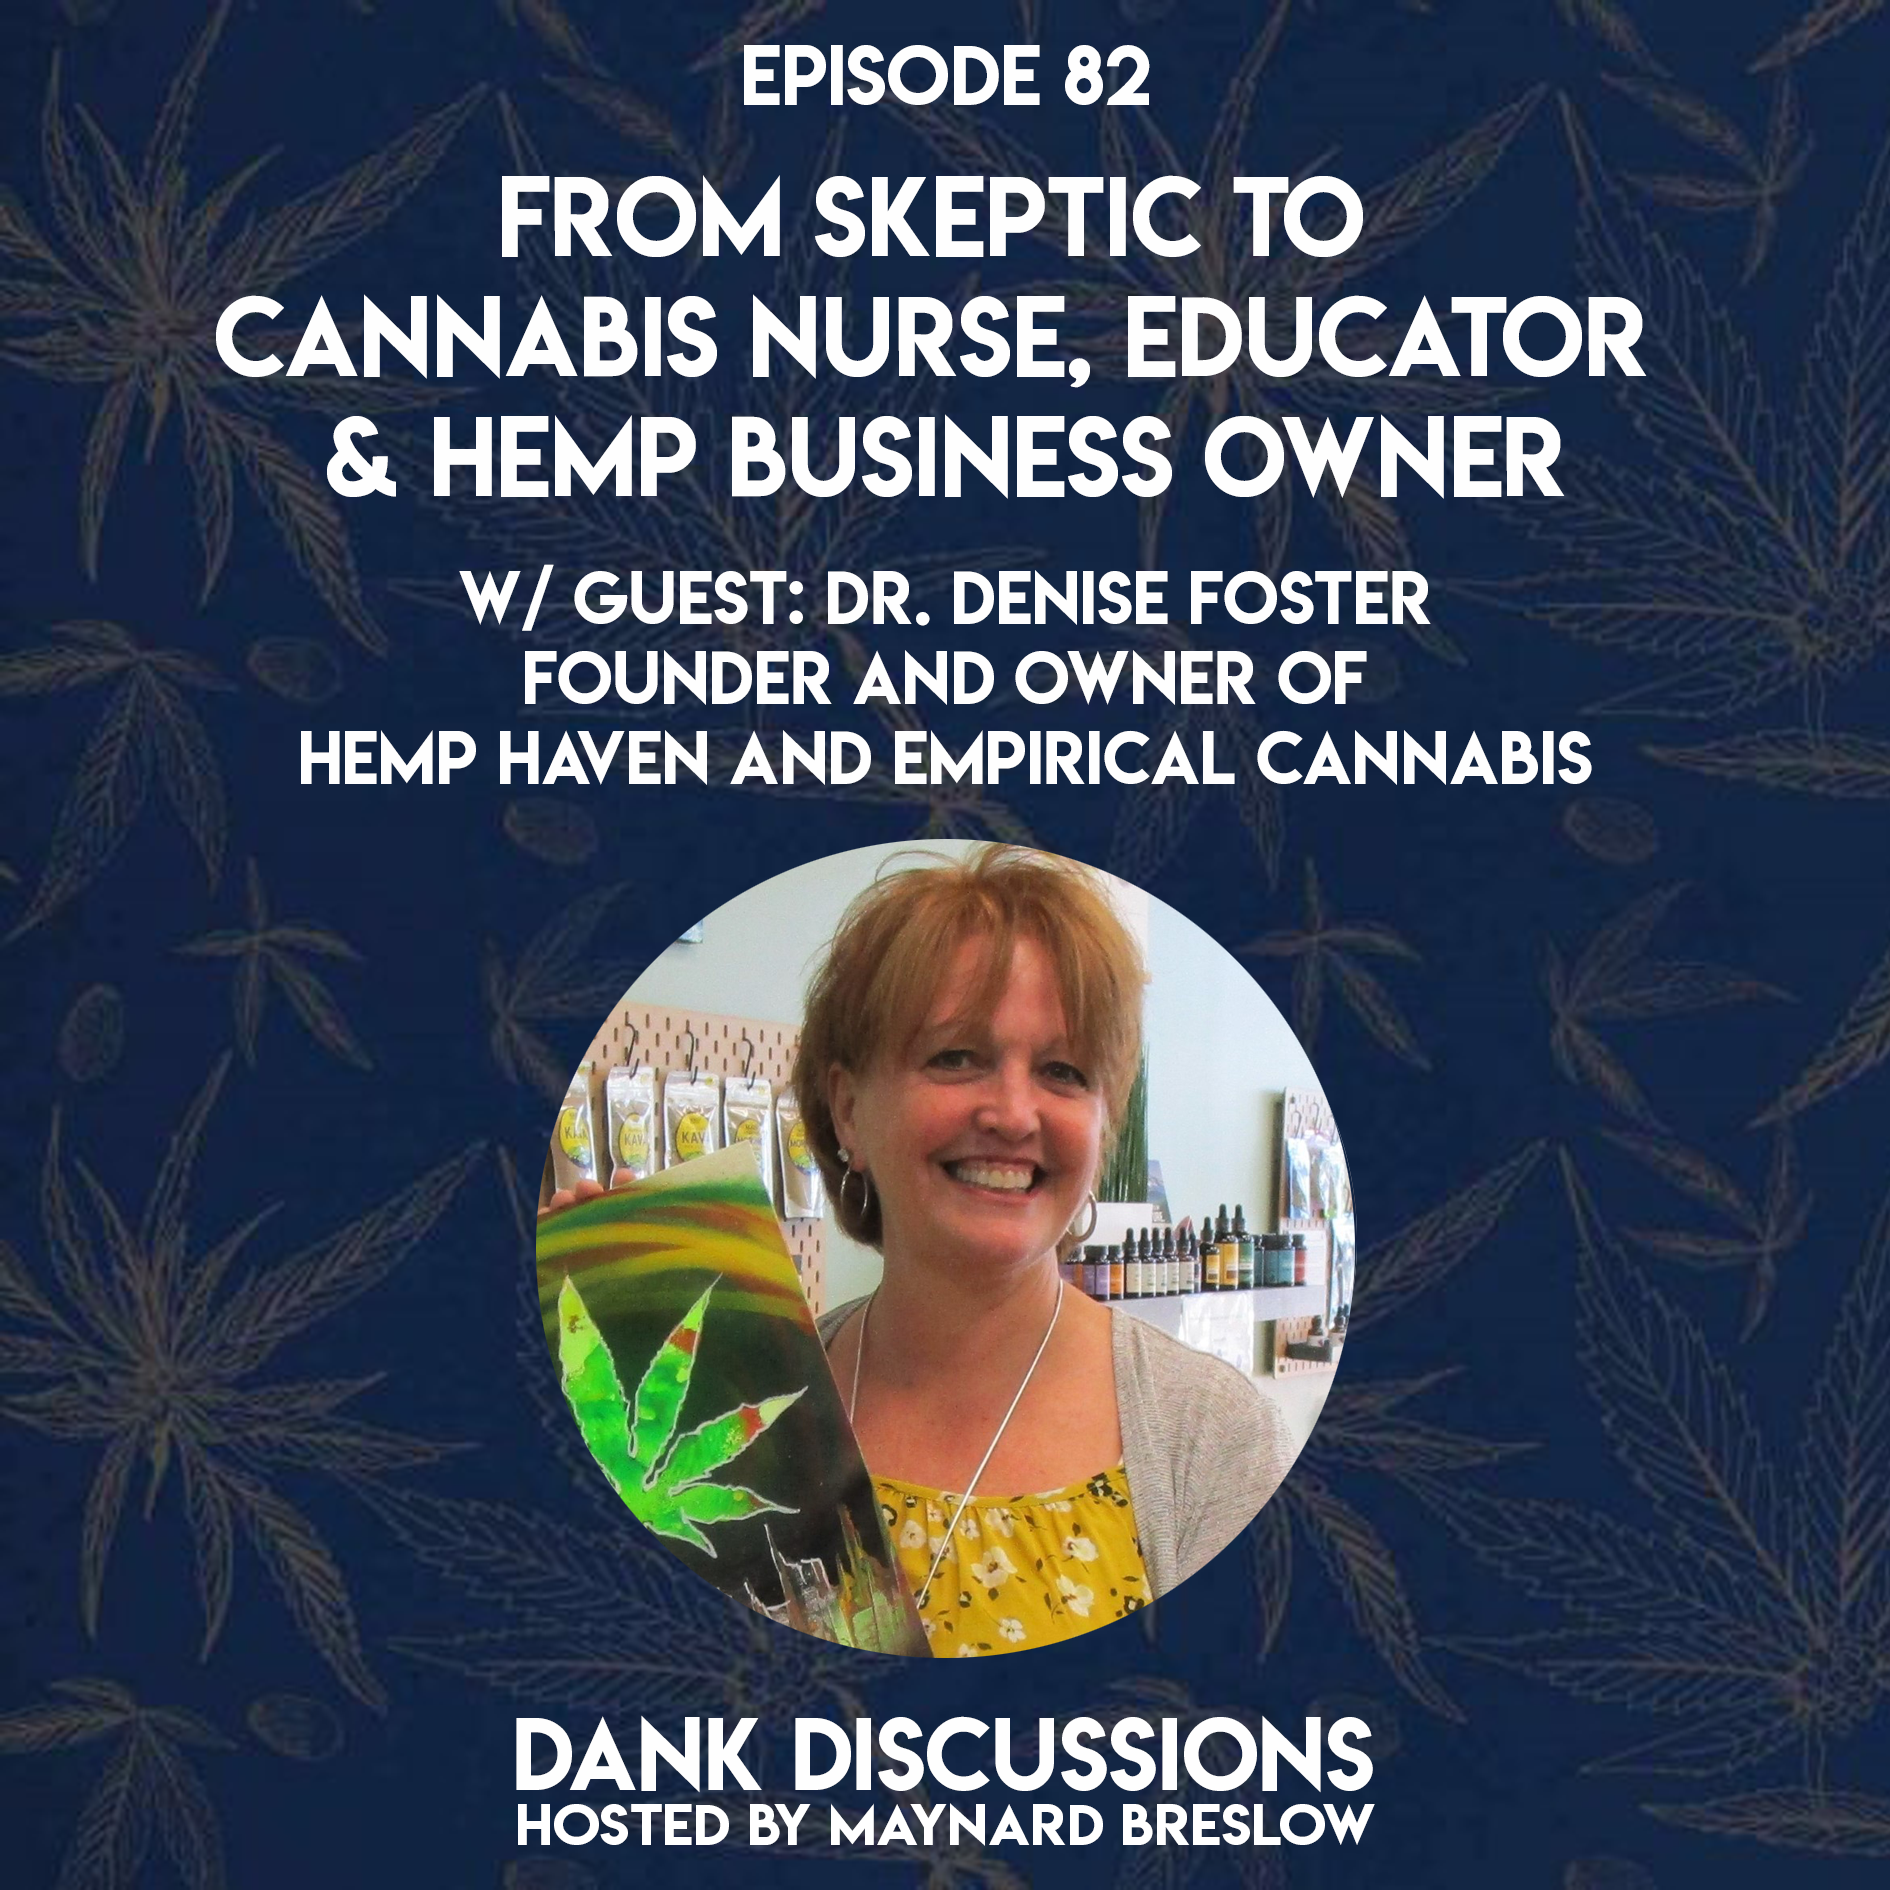 From Skeptic to Cannabis Nurse, Educator & Hemp Business Owner